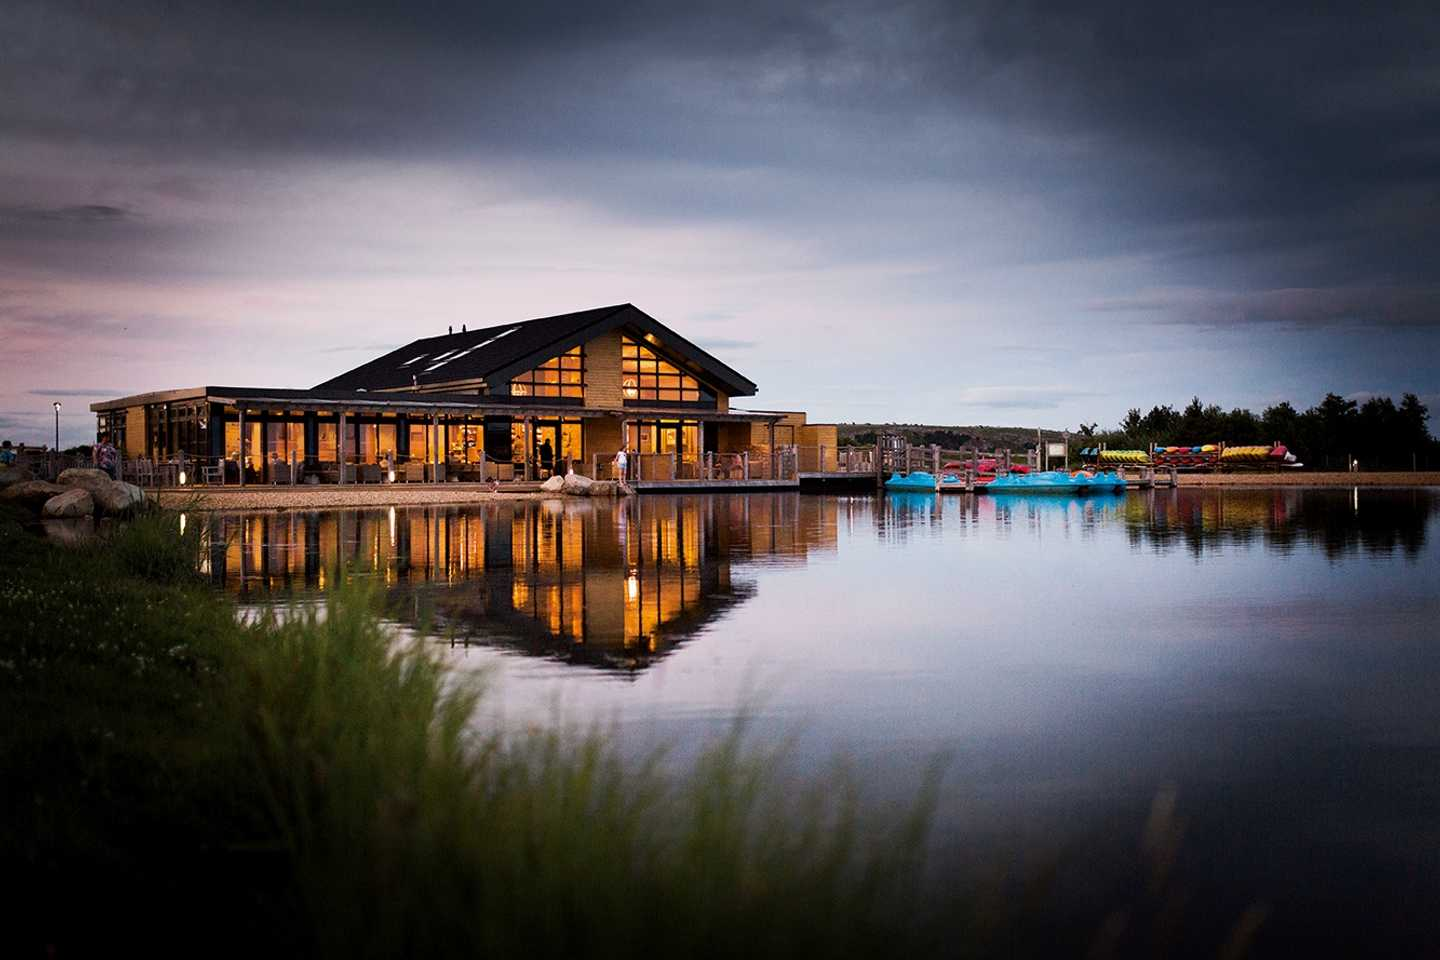 View of Otter Lodge Owners' Lounge from across the lake at Lakeland